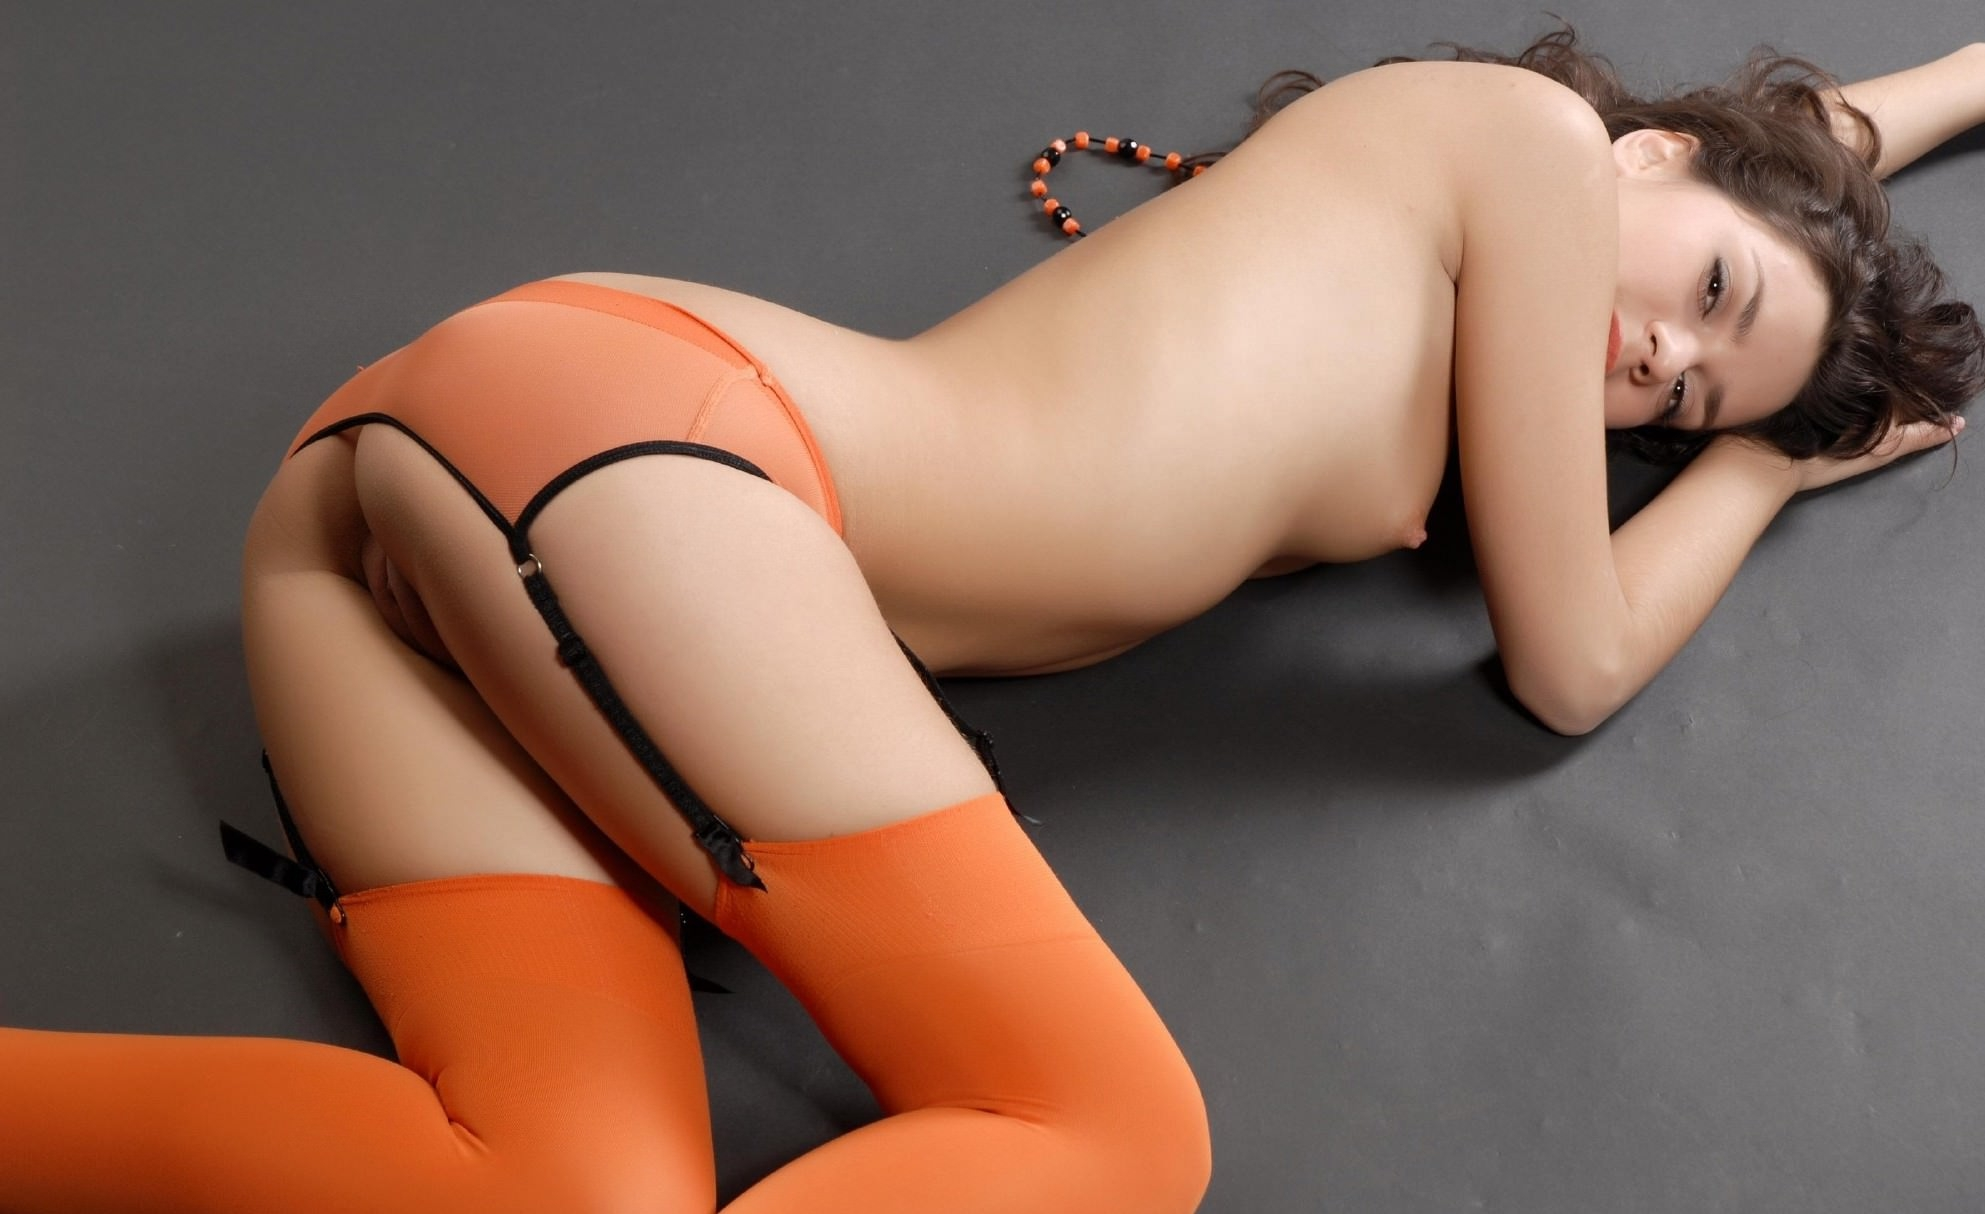 Naked women in striped thigh socks